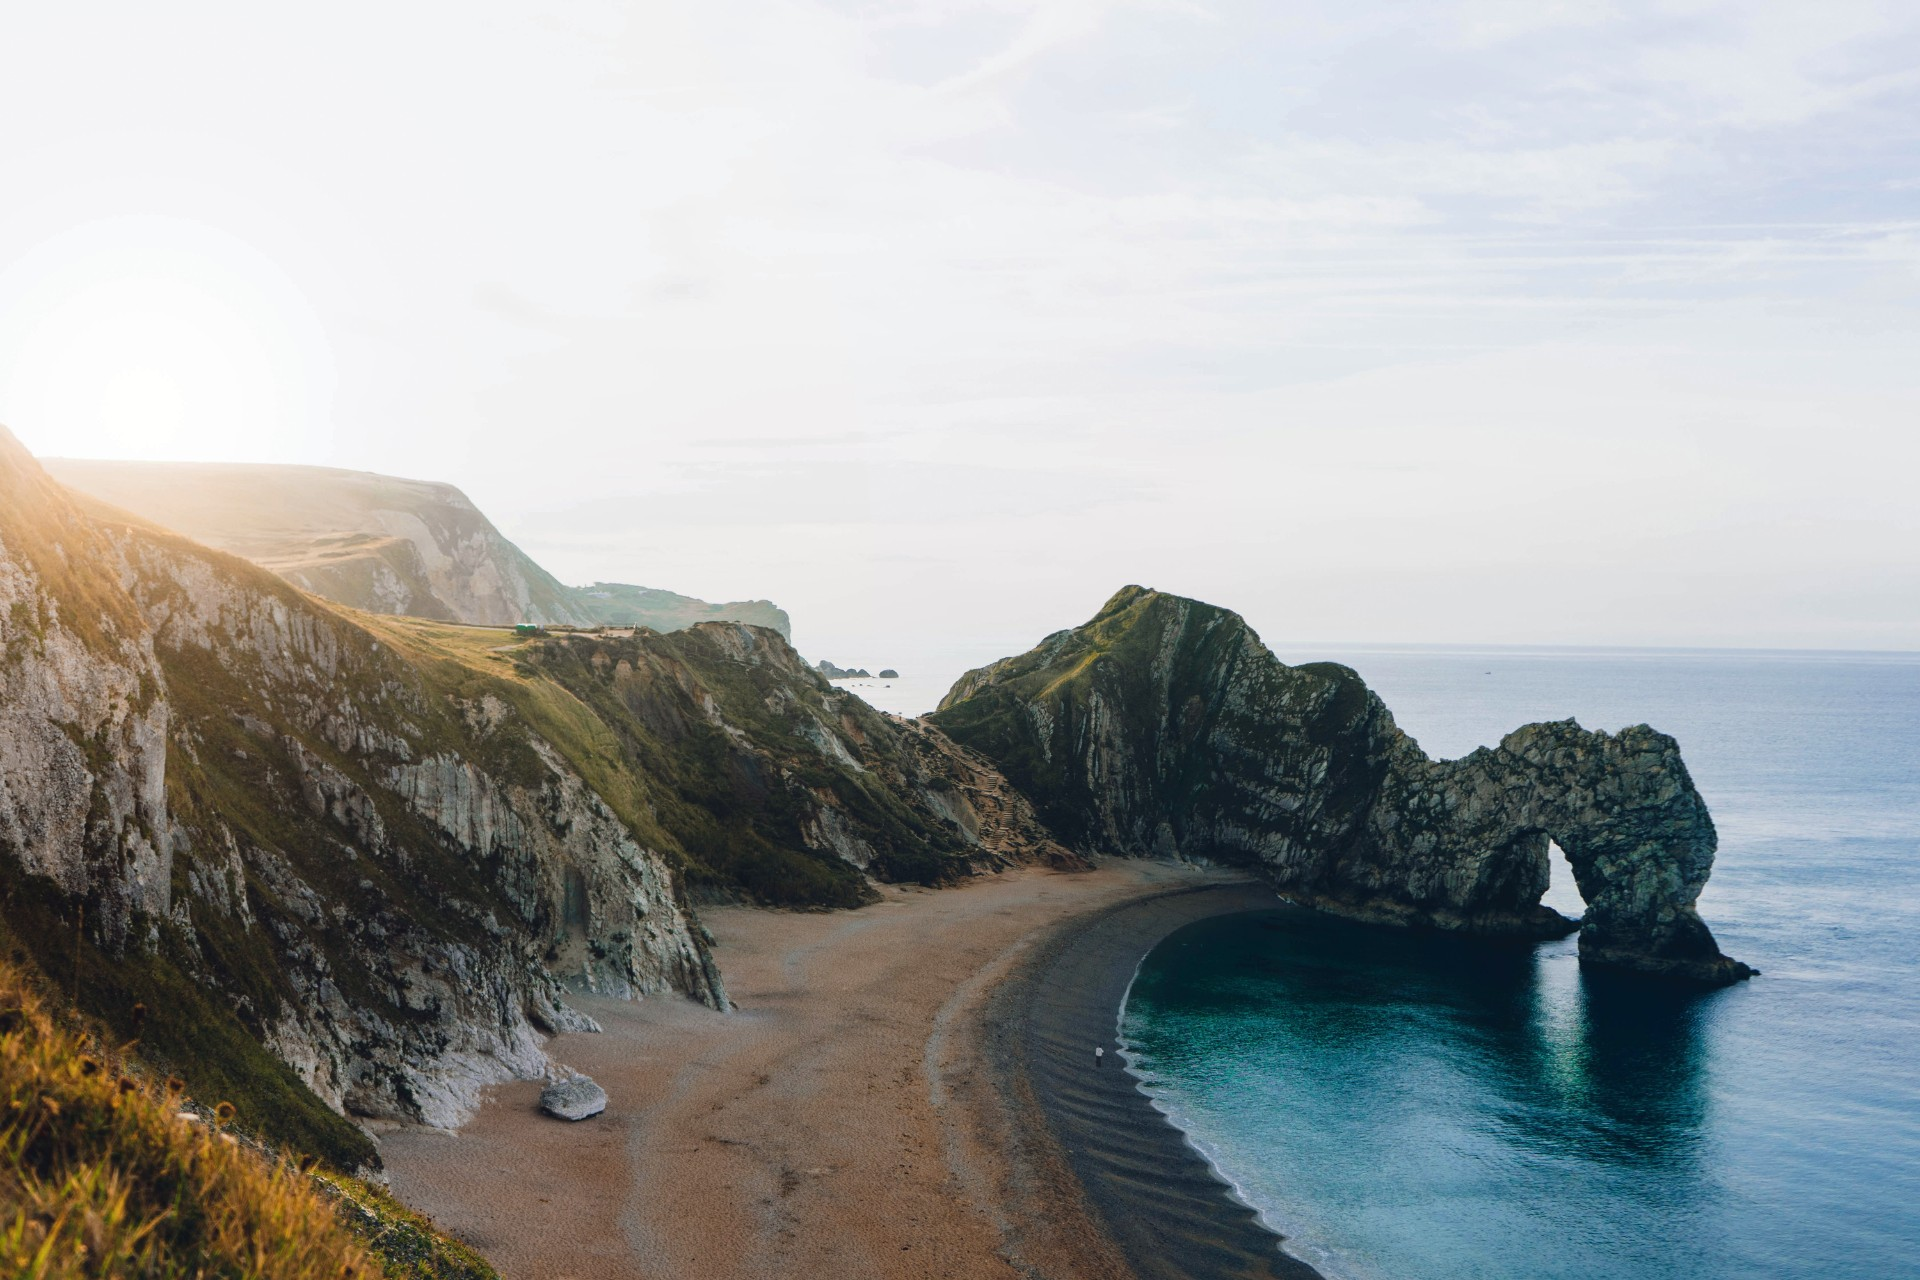 Beach sea cliff sand seaside rock formation Durdle Door Dorset England UK 8 Great Day Trips from Exeter You Can't Miss. Exeter day trips. England, UK. Day trips from Devon. Day trips from Exeter Devon. Day trips from Exeter UK. Day trips from Exeter by train. Day tours from Exeter. Day tours from Exeter UK. Coach day trips from Exeter. Things to do in Exeter. Things to see in Exeter. Things to do in Devon. Exeter travel blog. Exeter travel guide. Bath. Bristol. Cardiff. Plymouth. English Riviera. Jurassic Coast. Dartmoor National Park. Cornwall. Sunset. Golden hour. Click through to read more...